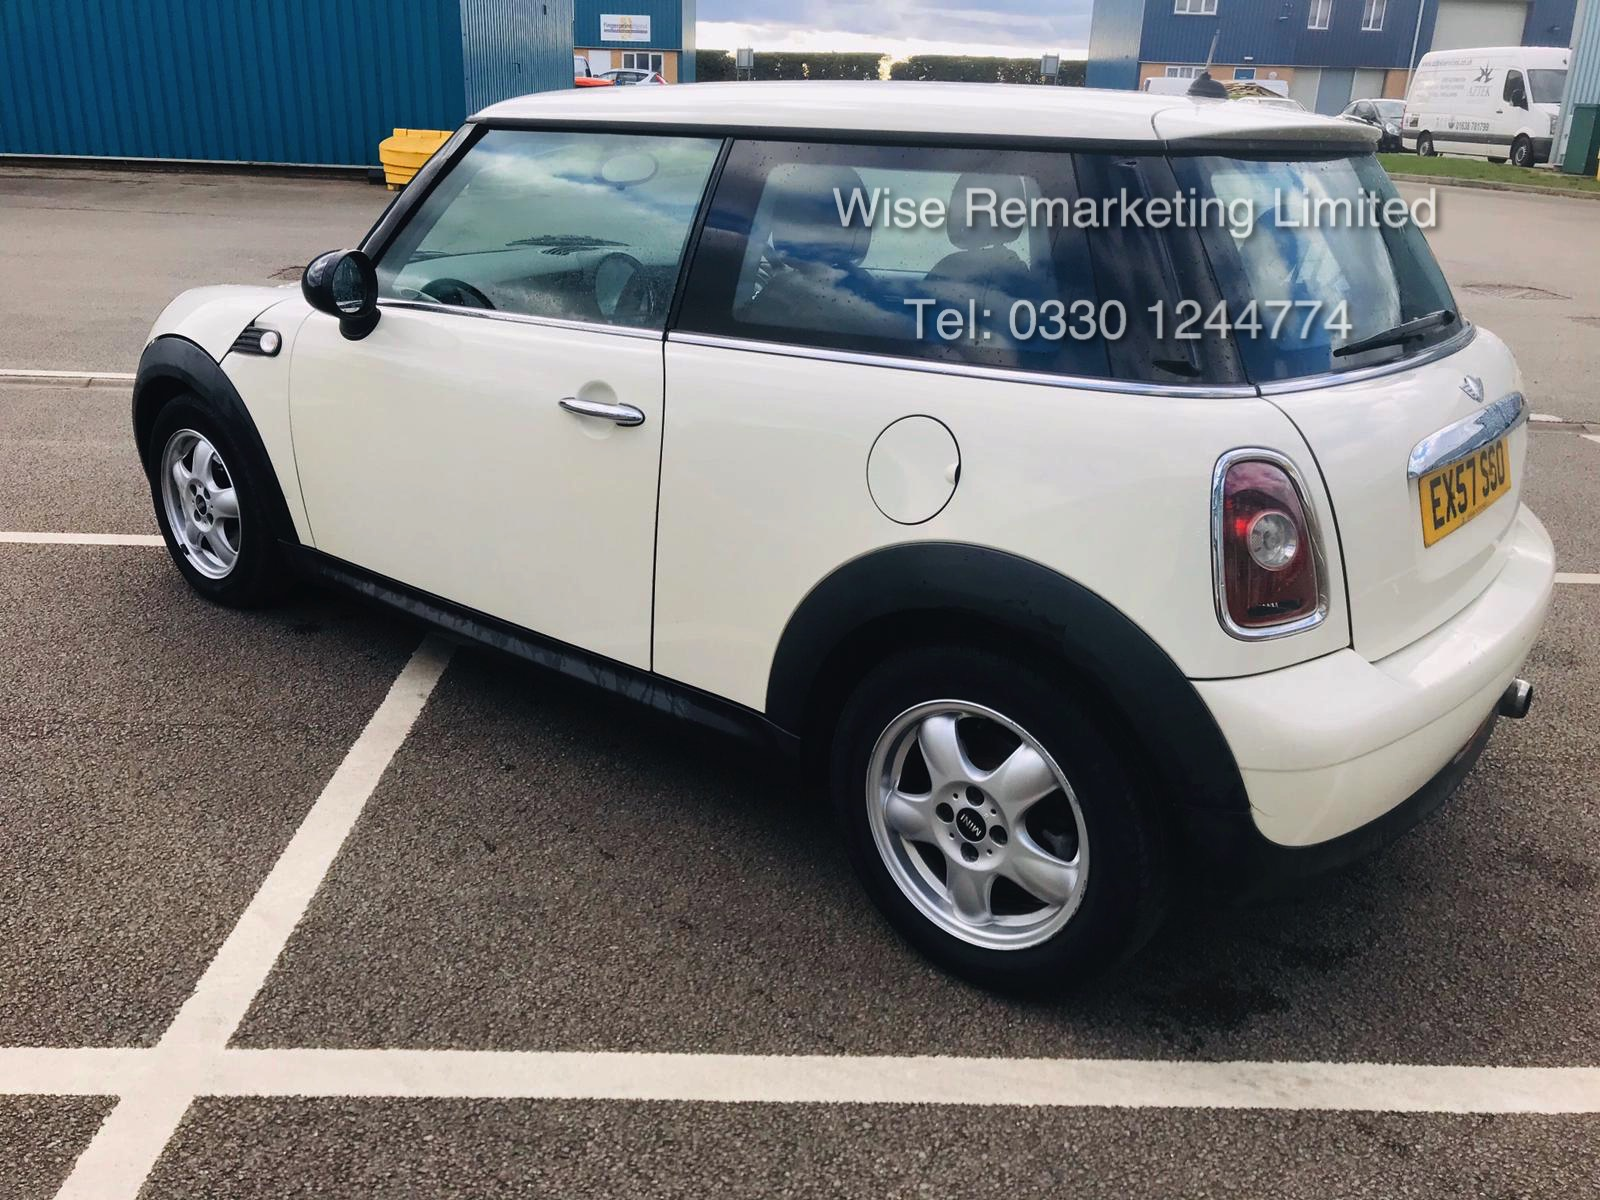 (RESERVE MET) Mini Cooper 1.4l One - 2008 Model - Service History - Air Con - White - Image 5 of 23